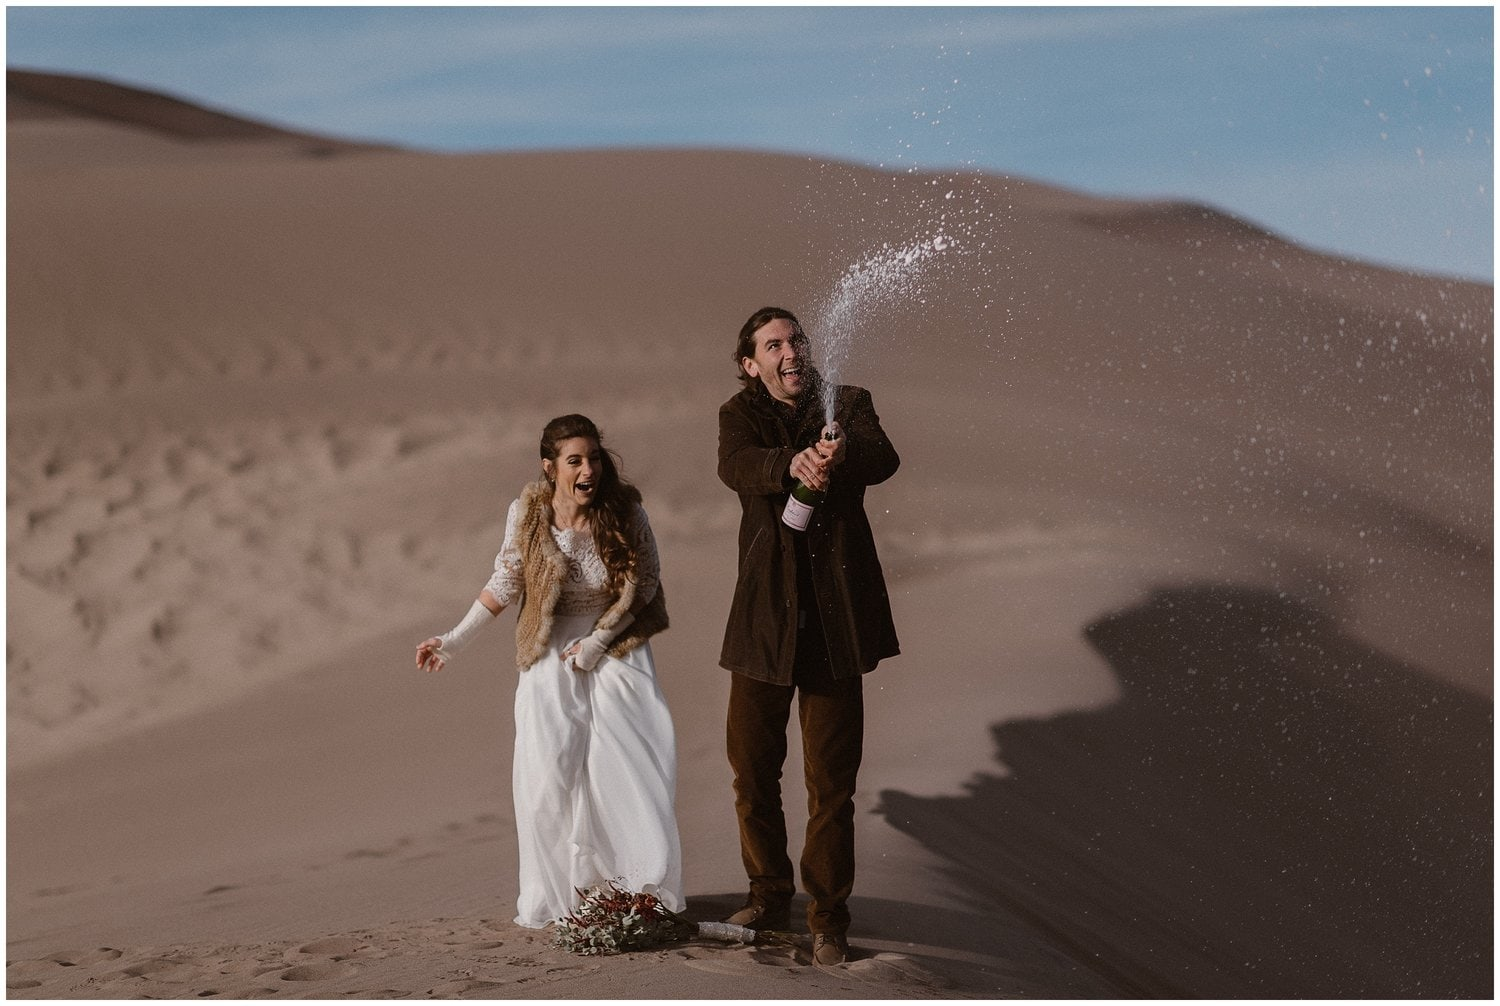 Bride and groom pop a bottle of champagne on the sand dunes on their wedding day.